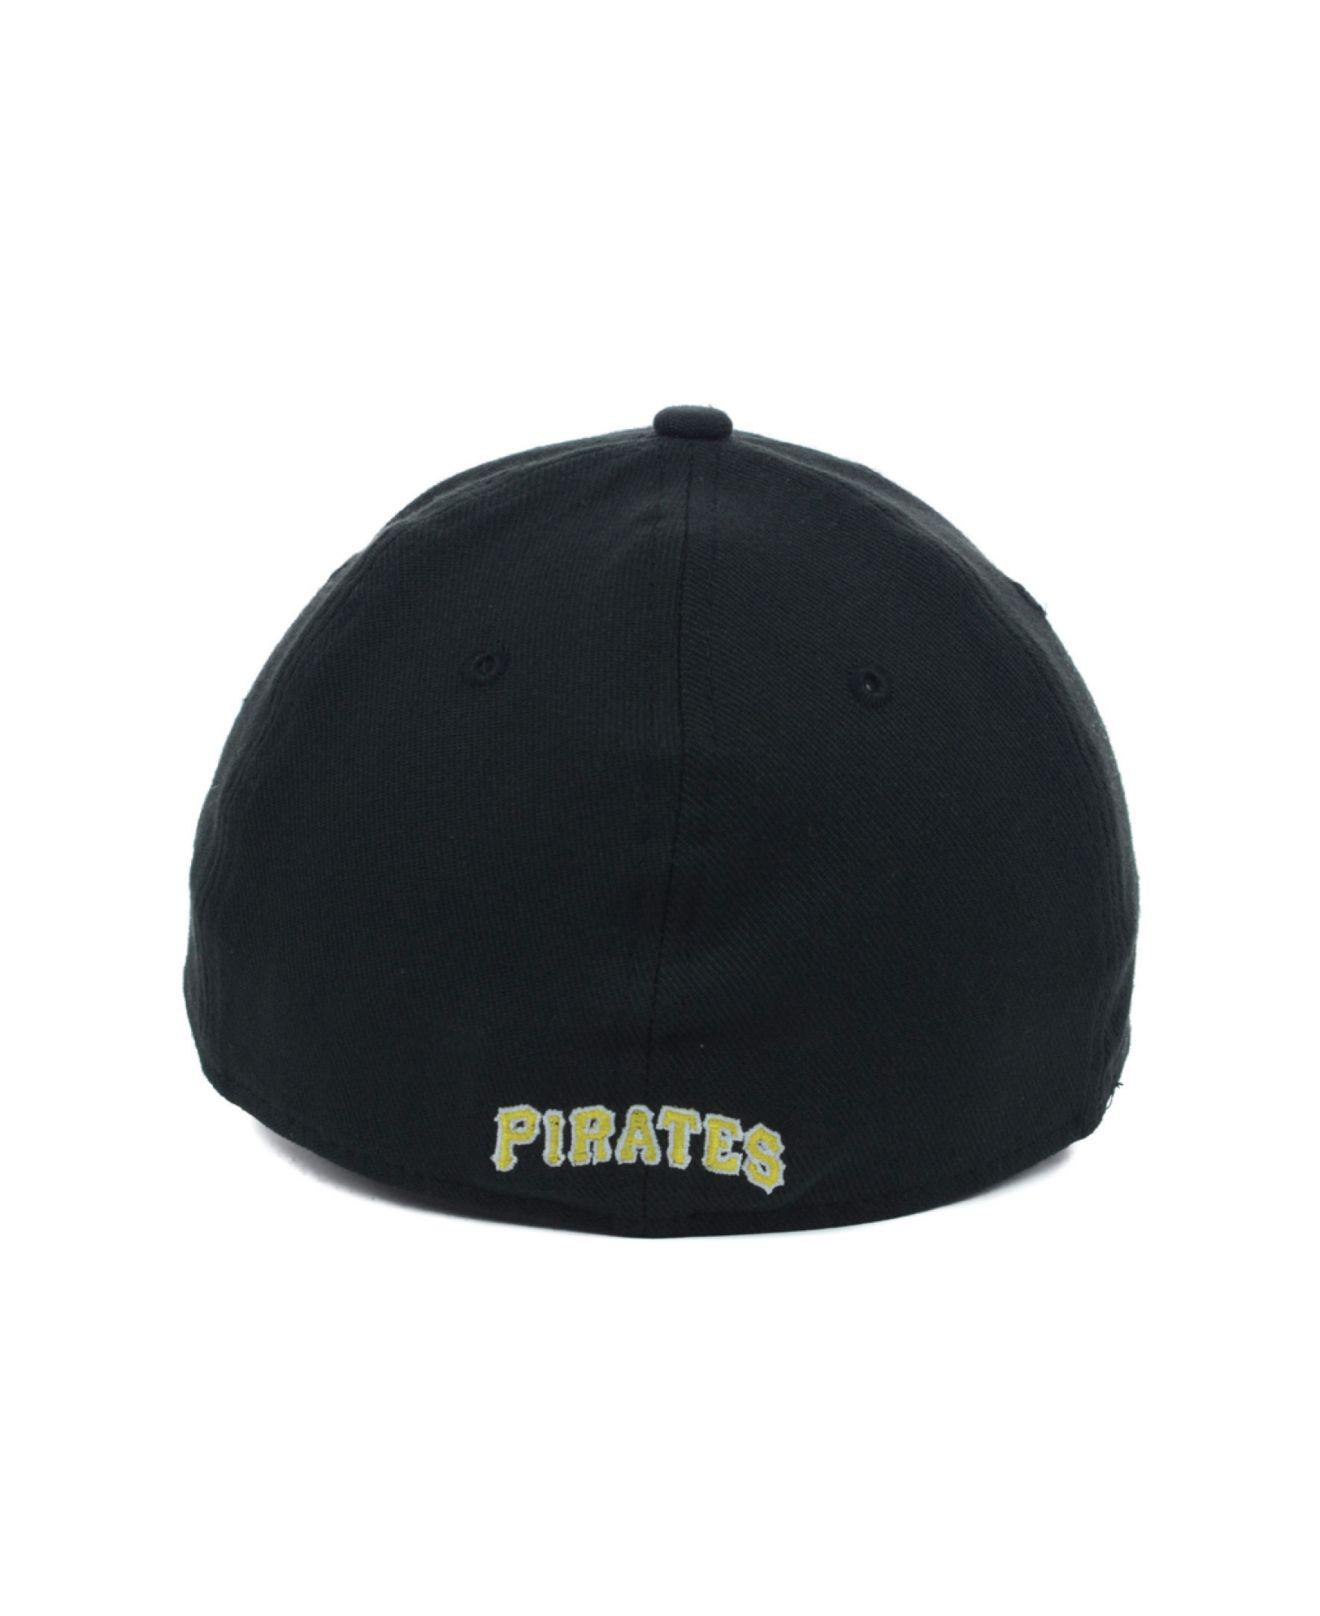 f3a6d9cbdf2 ... Pittsburgh Pirates Mlb Team Classic 39thirty Cap for Men - Lyst. View  fullscreen